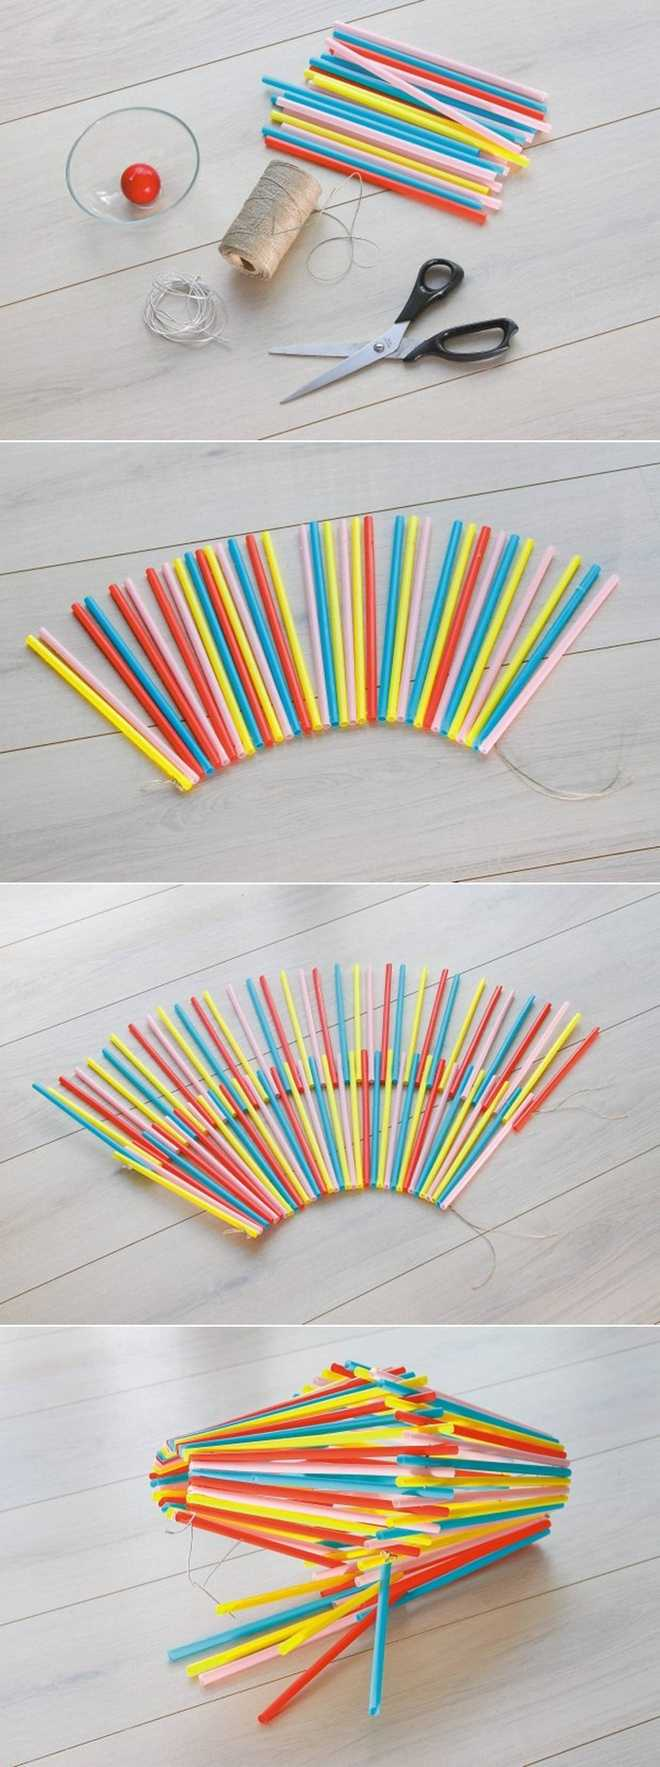 diy-candle-holder-drinking-straws-tutorial